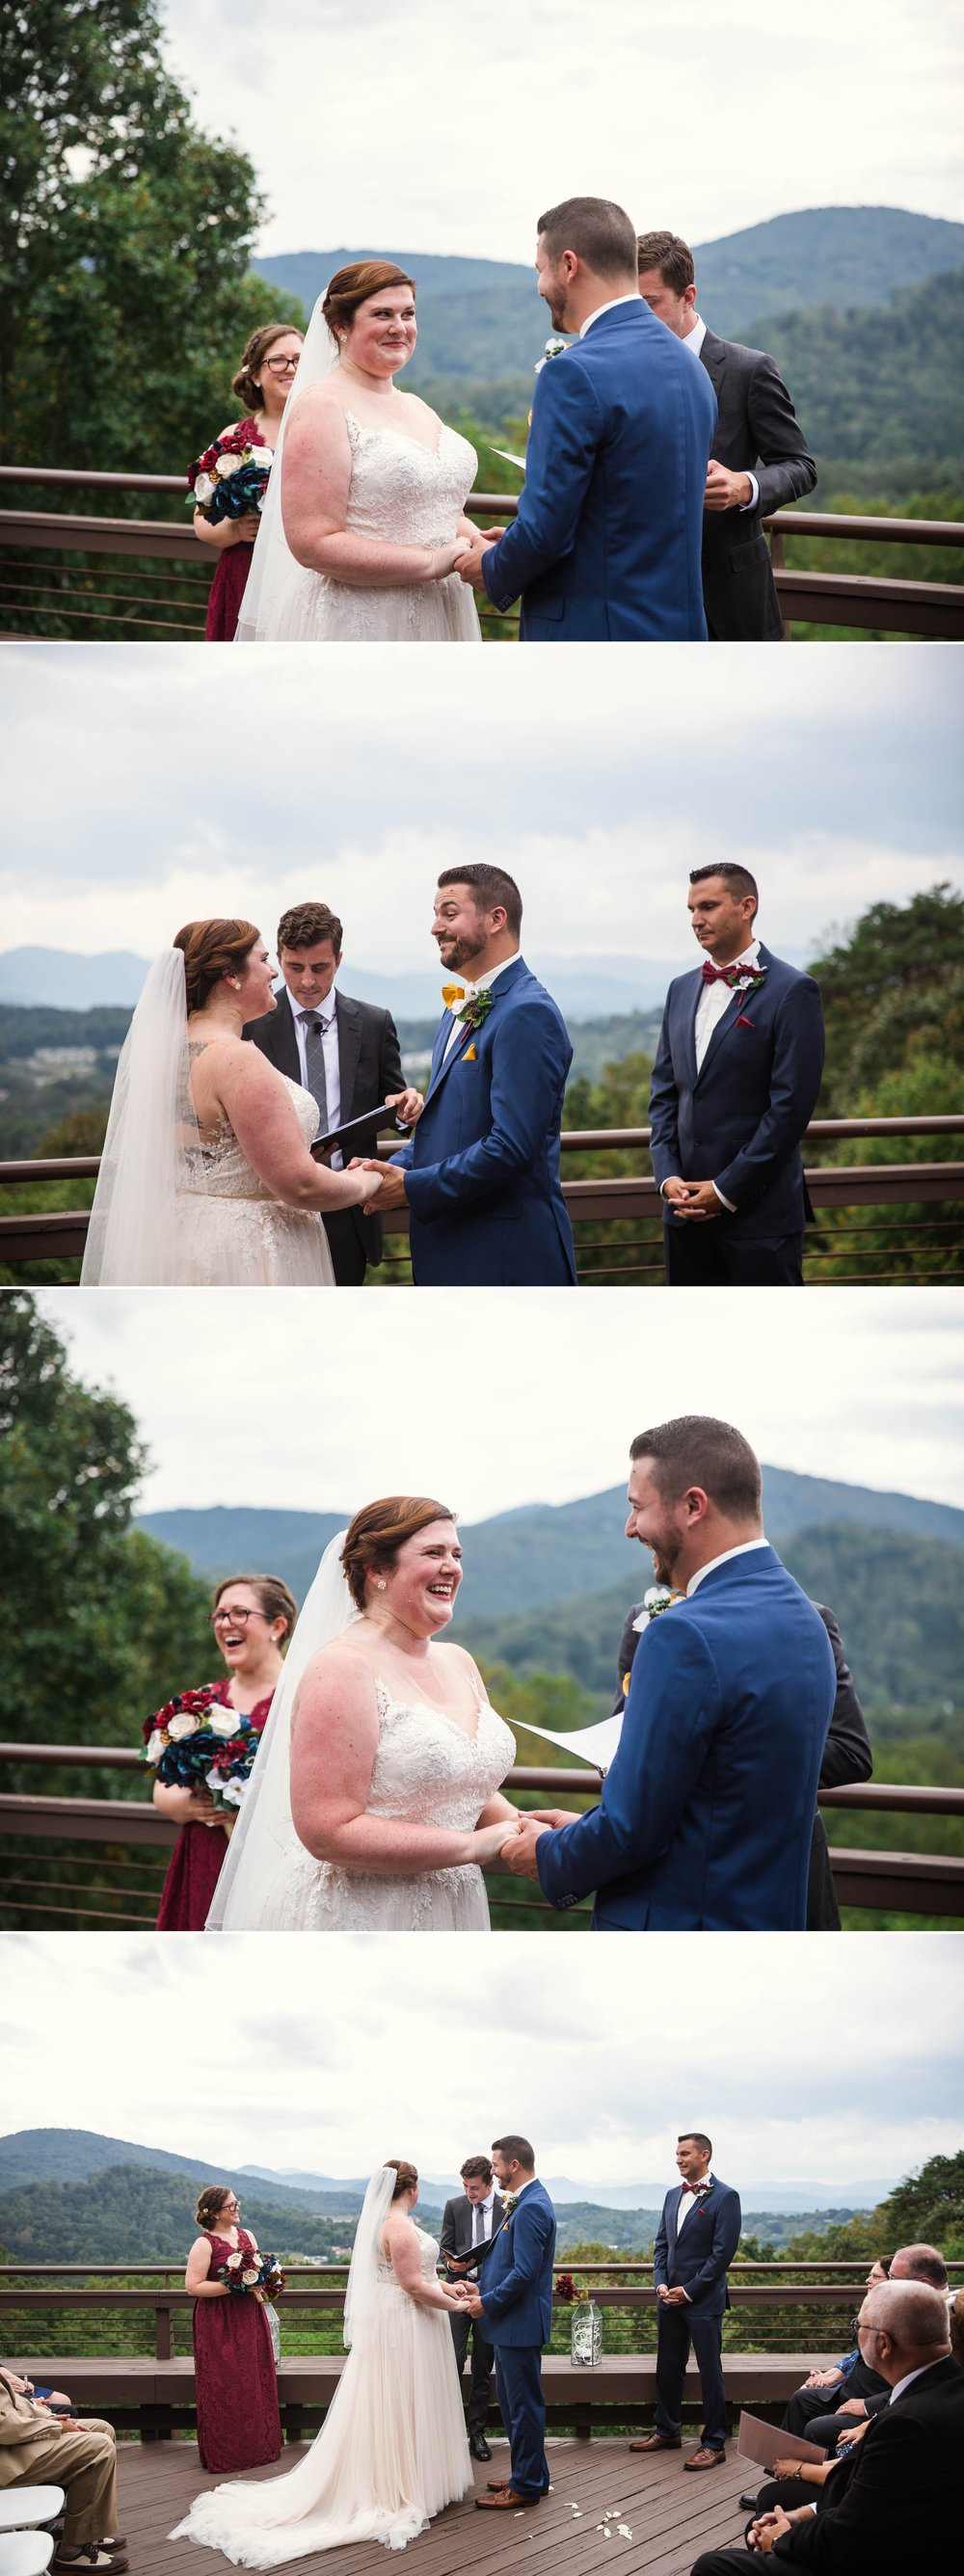 Ceremony overlooking the Blue Ridge Mountains - Meredith + Jason - The Crest Center and Pavilion in Asheville, NC - Raleigh Wedding Photographer